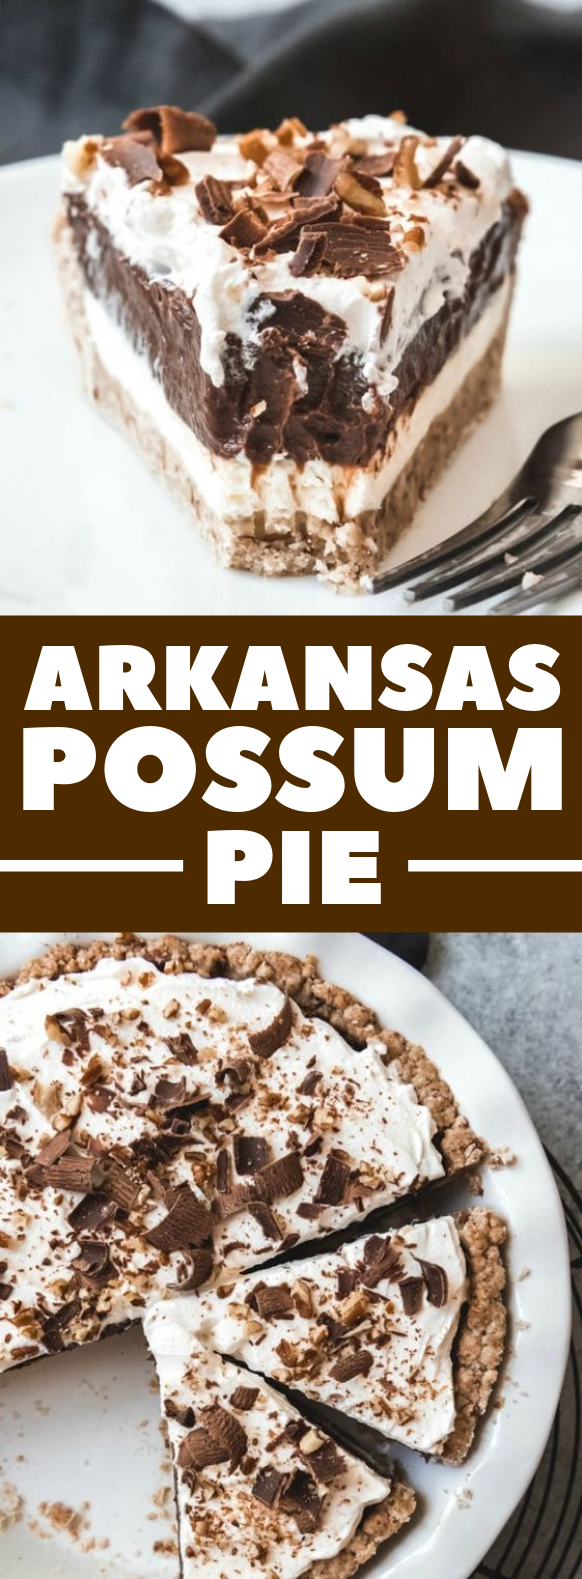 ARKANSAS POSSUM PIE #dessert #chocolate